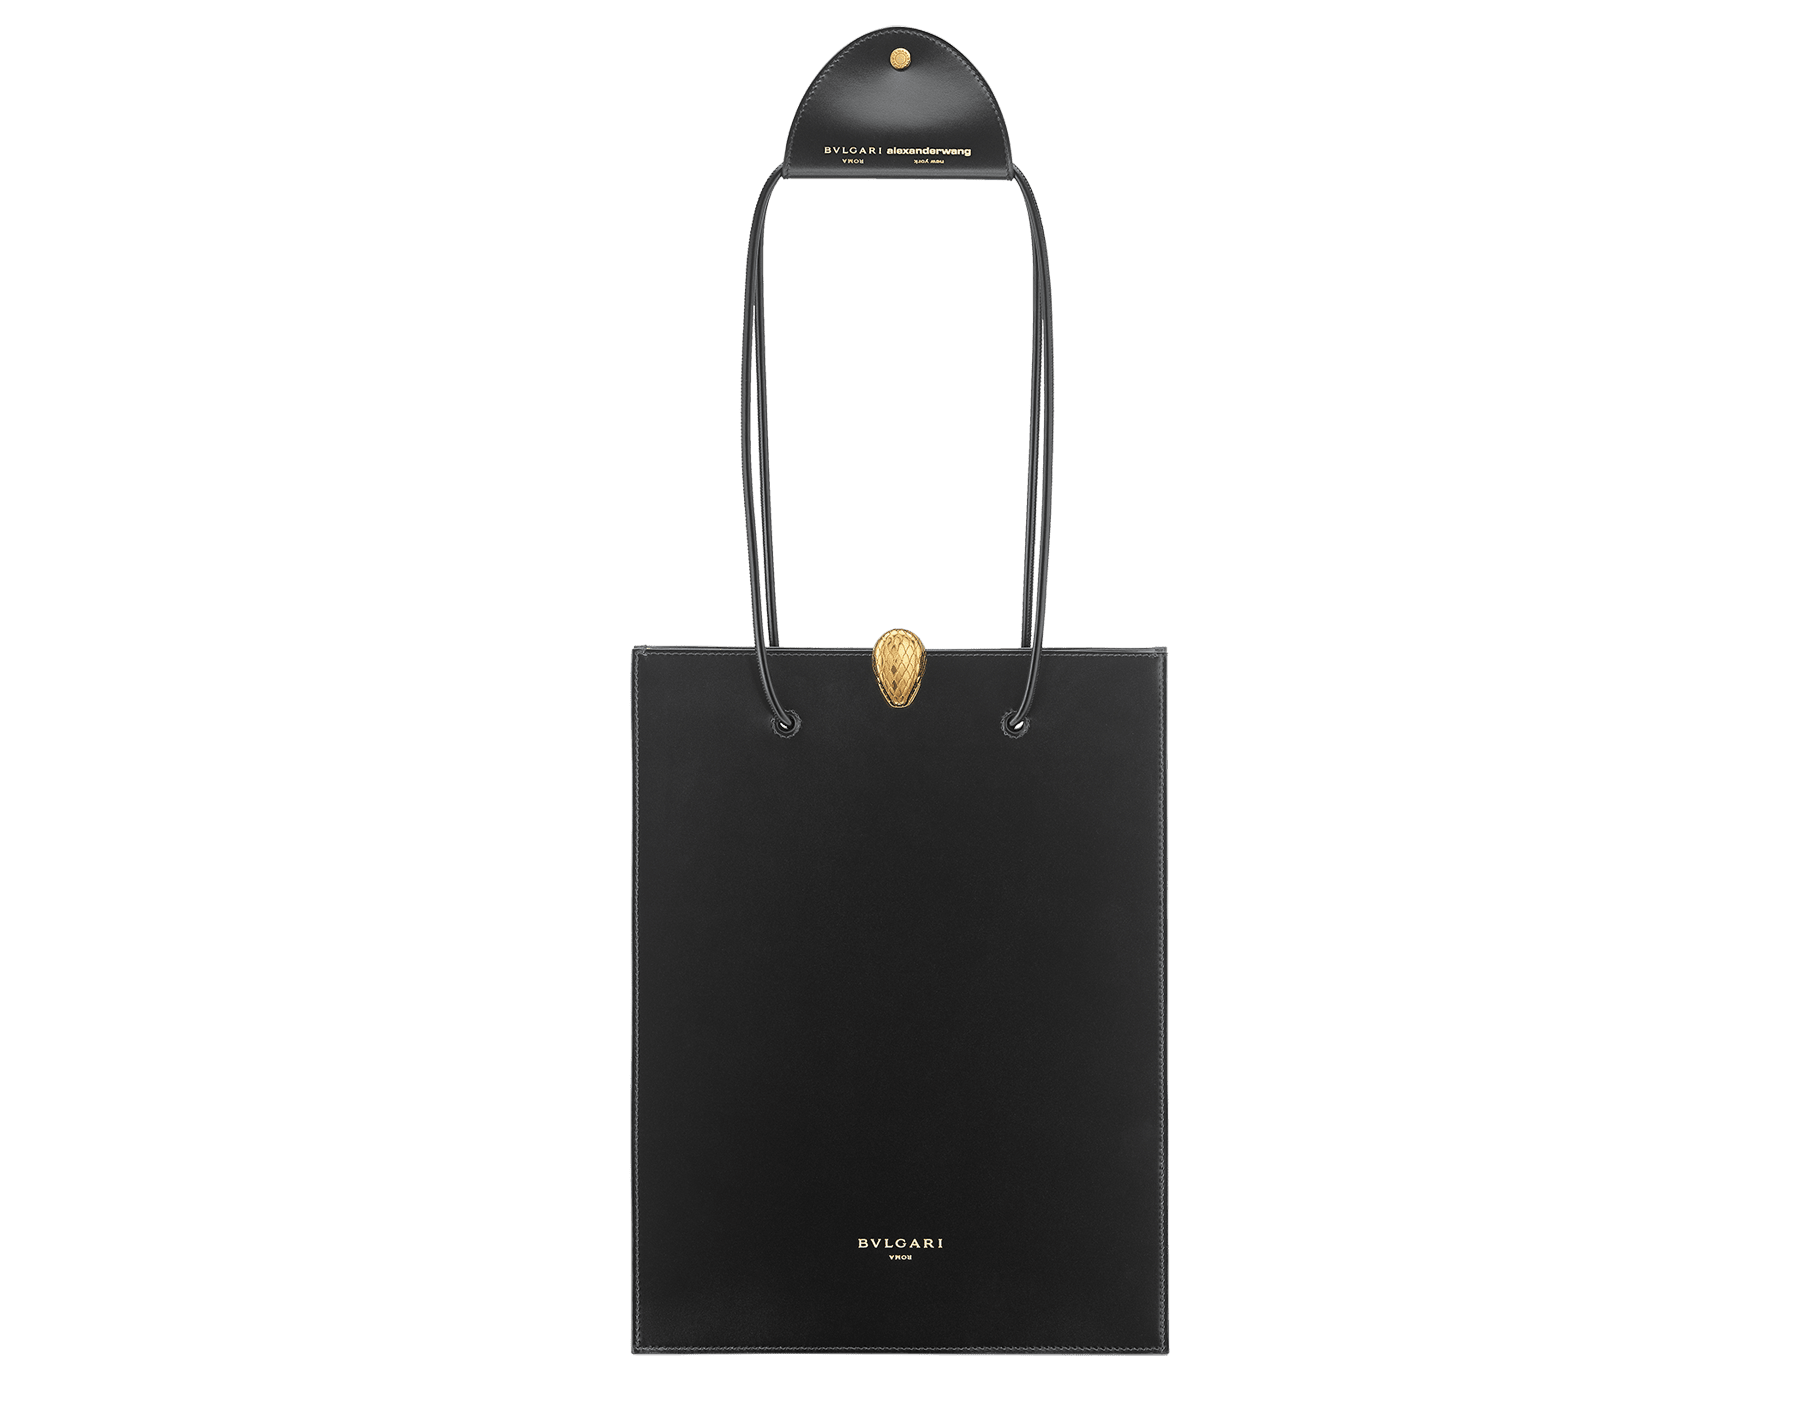 Alexander Wang x Bvlgari shopping tote bag in smooth black calf leather. New Serpenti head closure in antique gold plated brass with tempting red enamel eyes. Limited edition. 288733 image 1